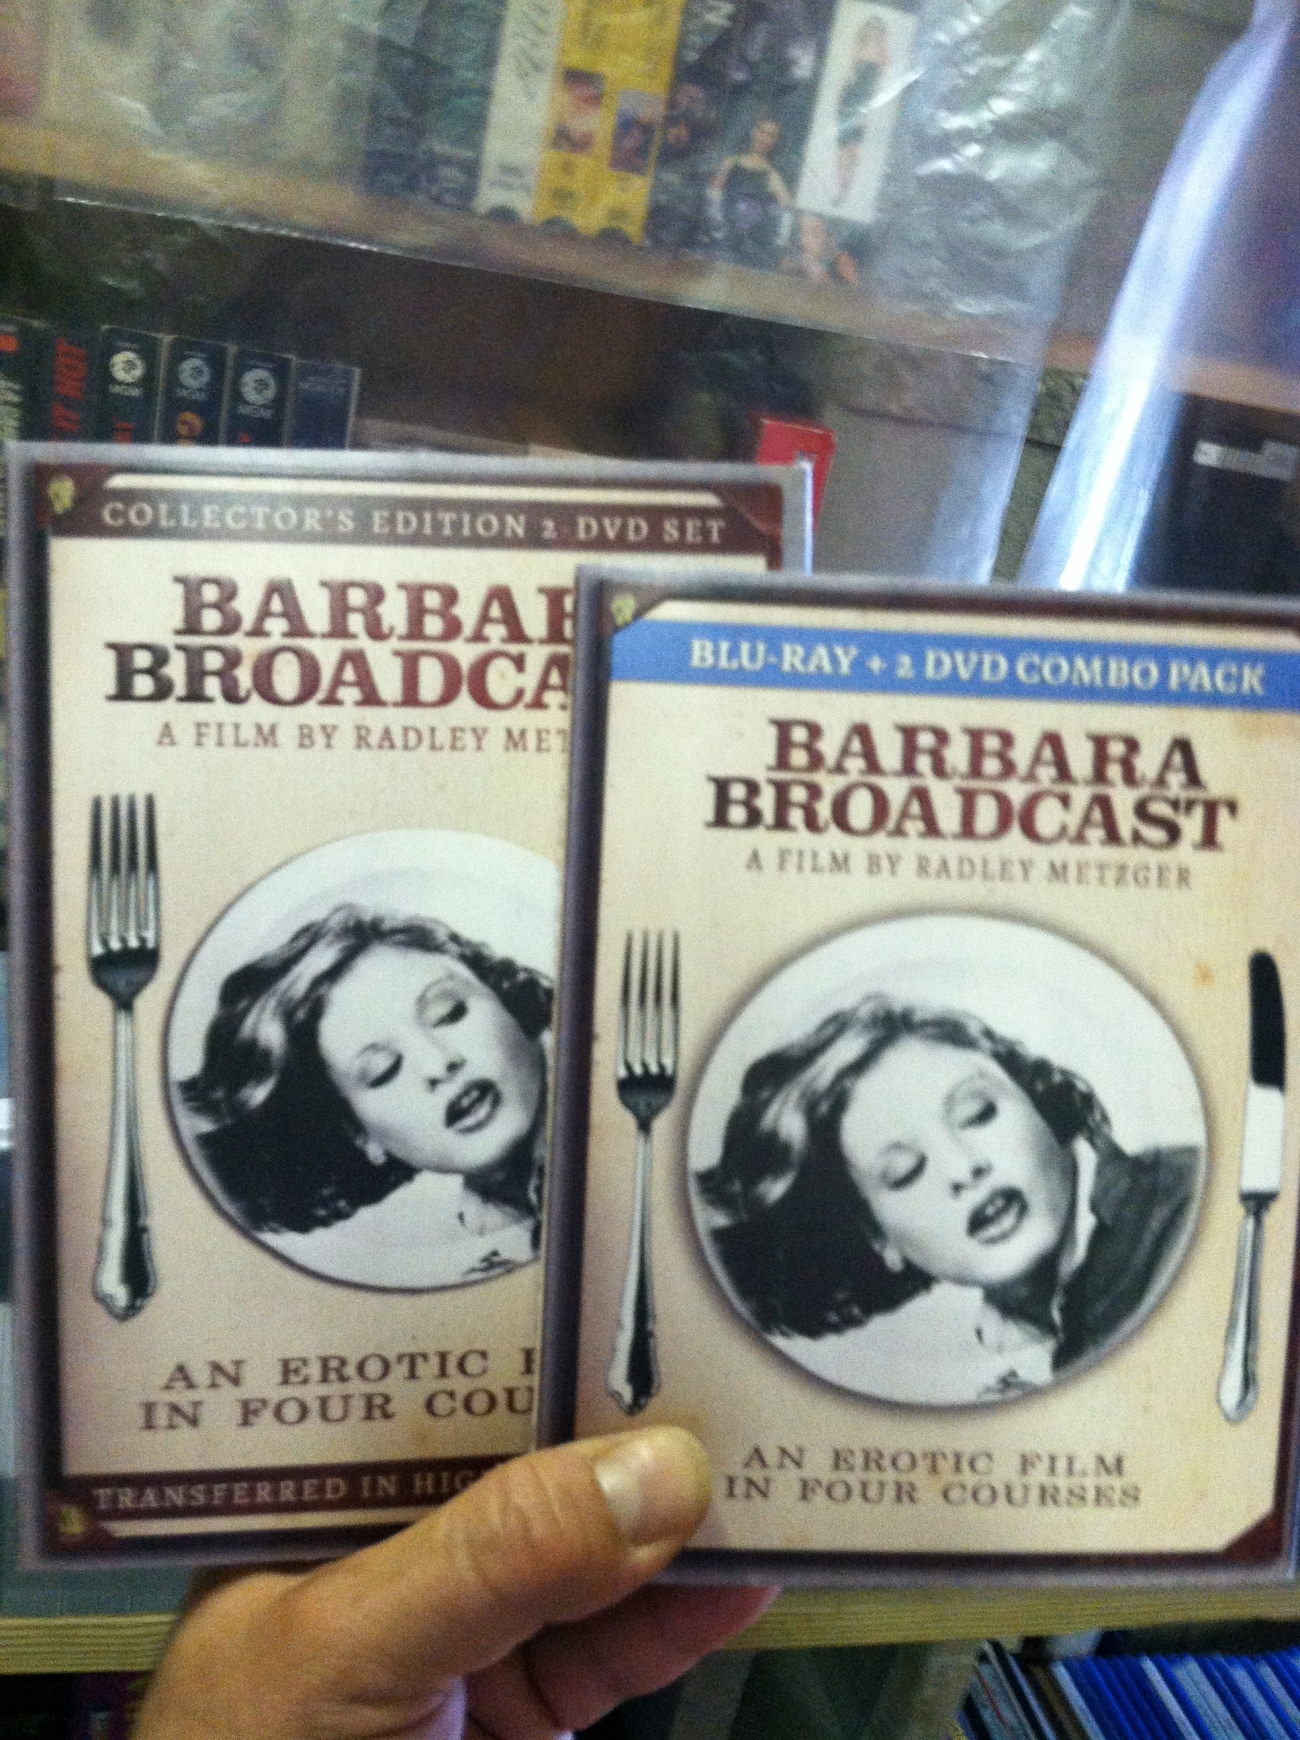 This film has been totally restored - from fruits to nuts. The new and much improved Barbara Broadcast 2013.